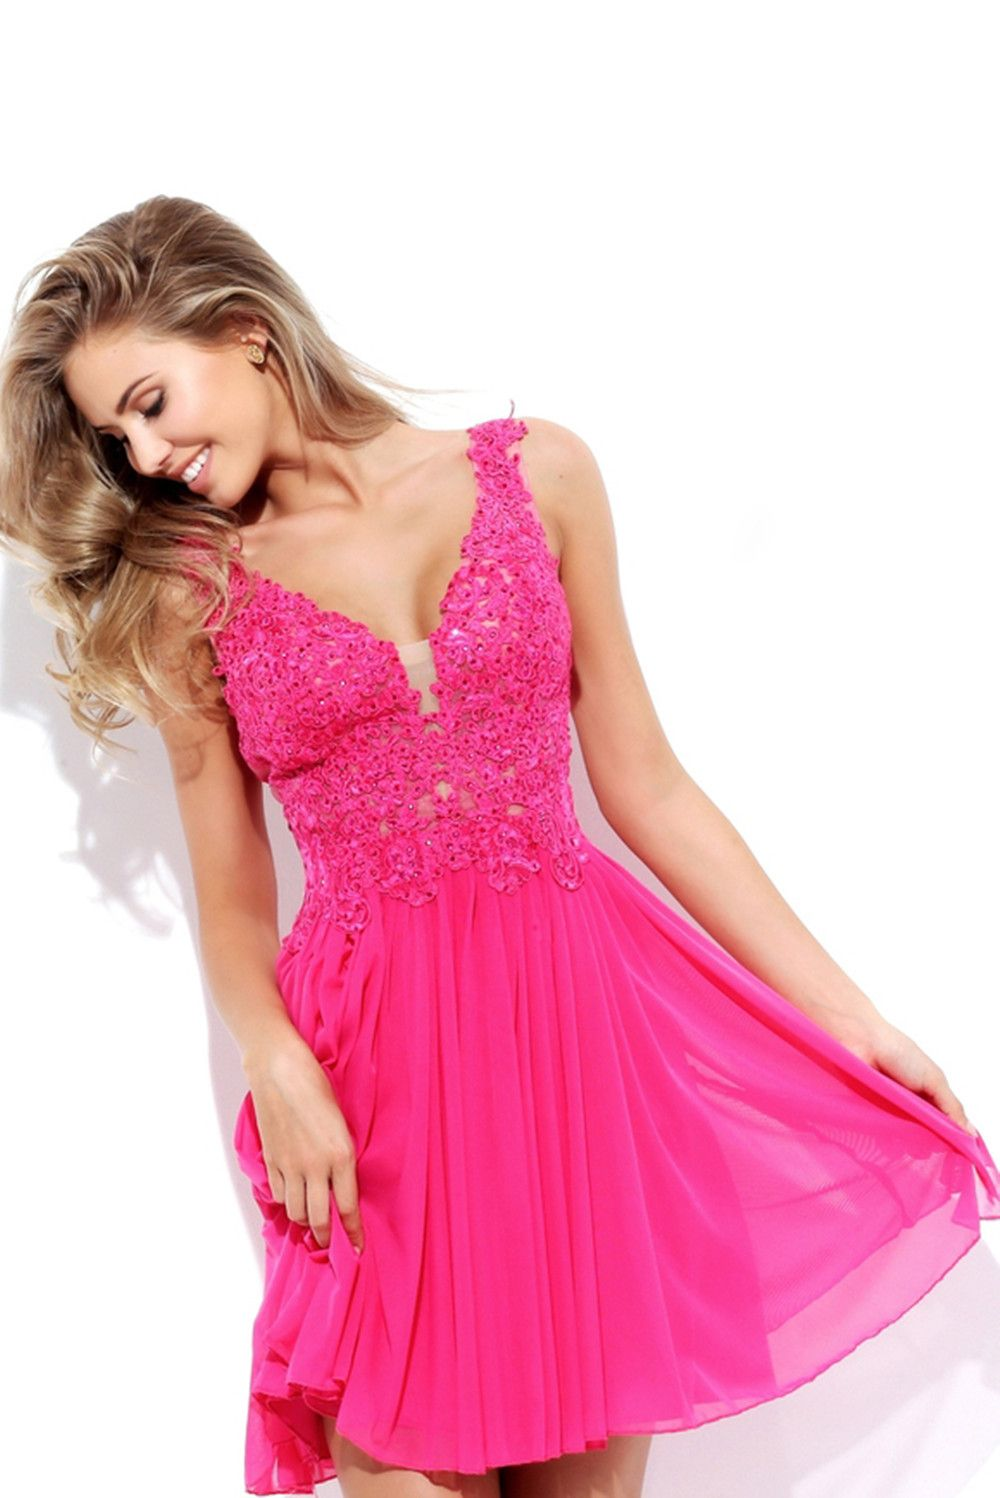 Shop the largest selection of Sherri Hill Prom Dresses in Tampa Bay Sherri  Hill 50756 Sherri Hill Nikki's offers the largest selection of Prom Bridal  ...